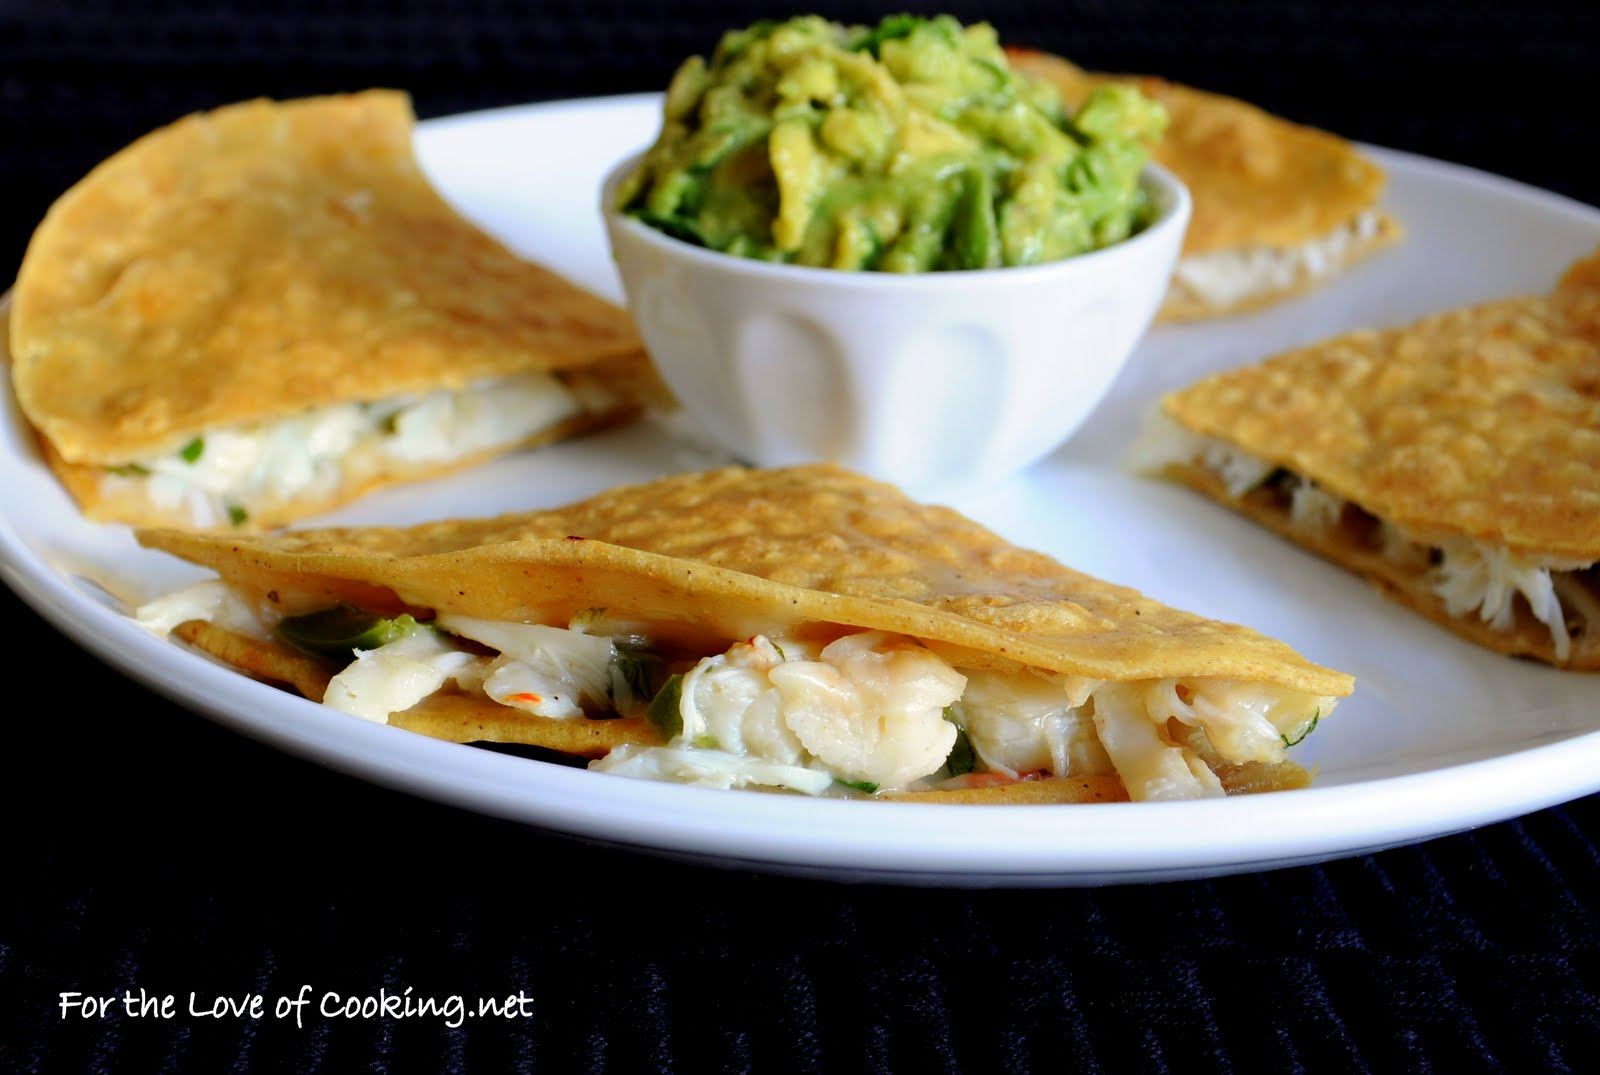 Crab Quesadilla with Homemade Guacamole | For the Love of Cooking